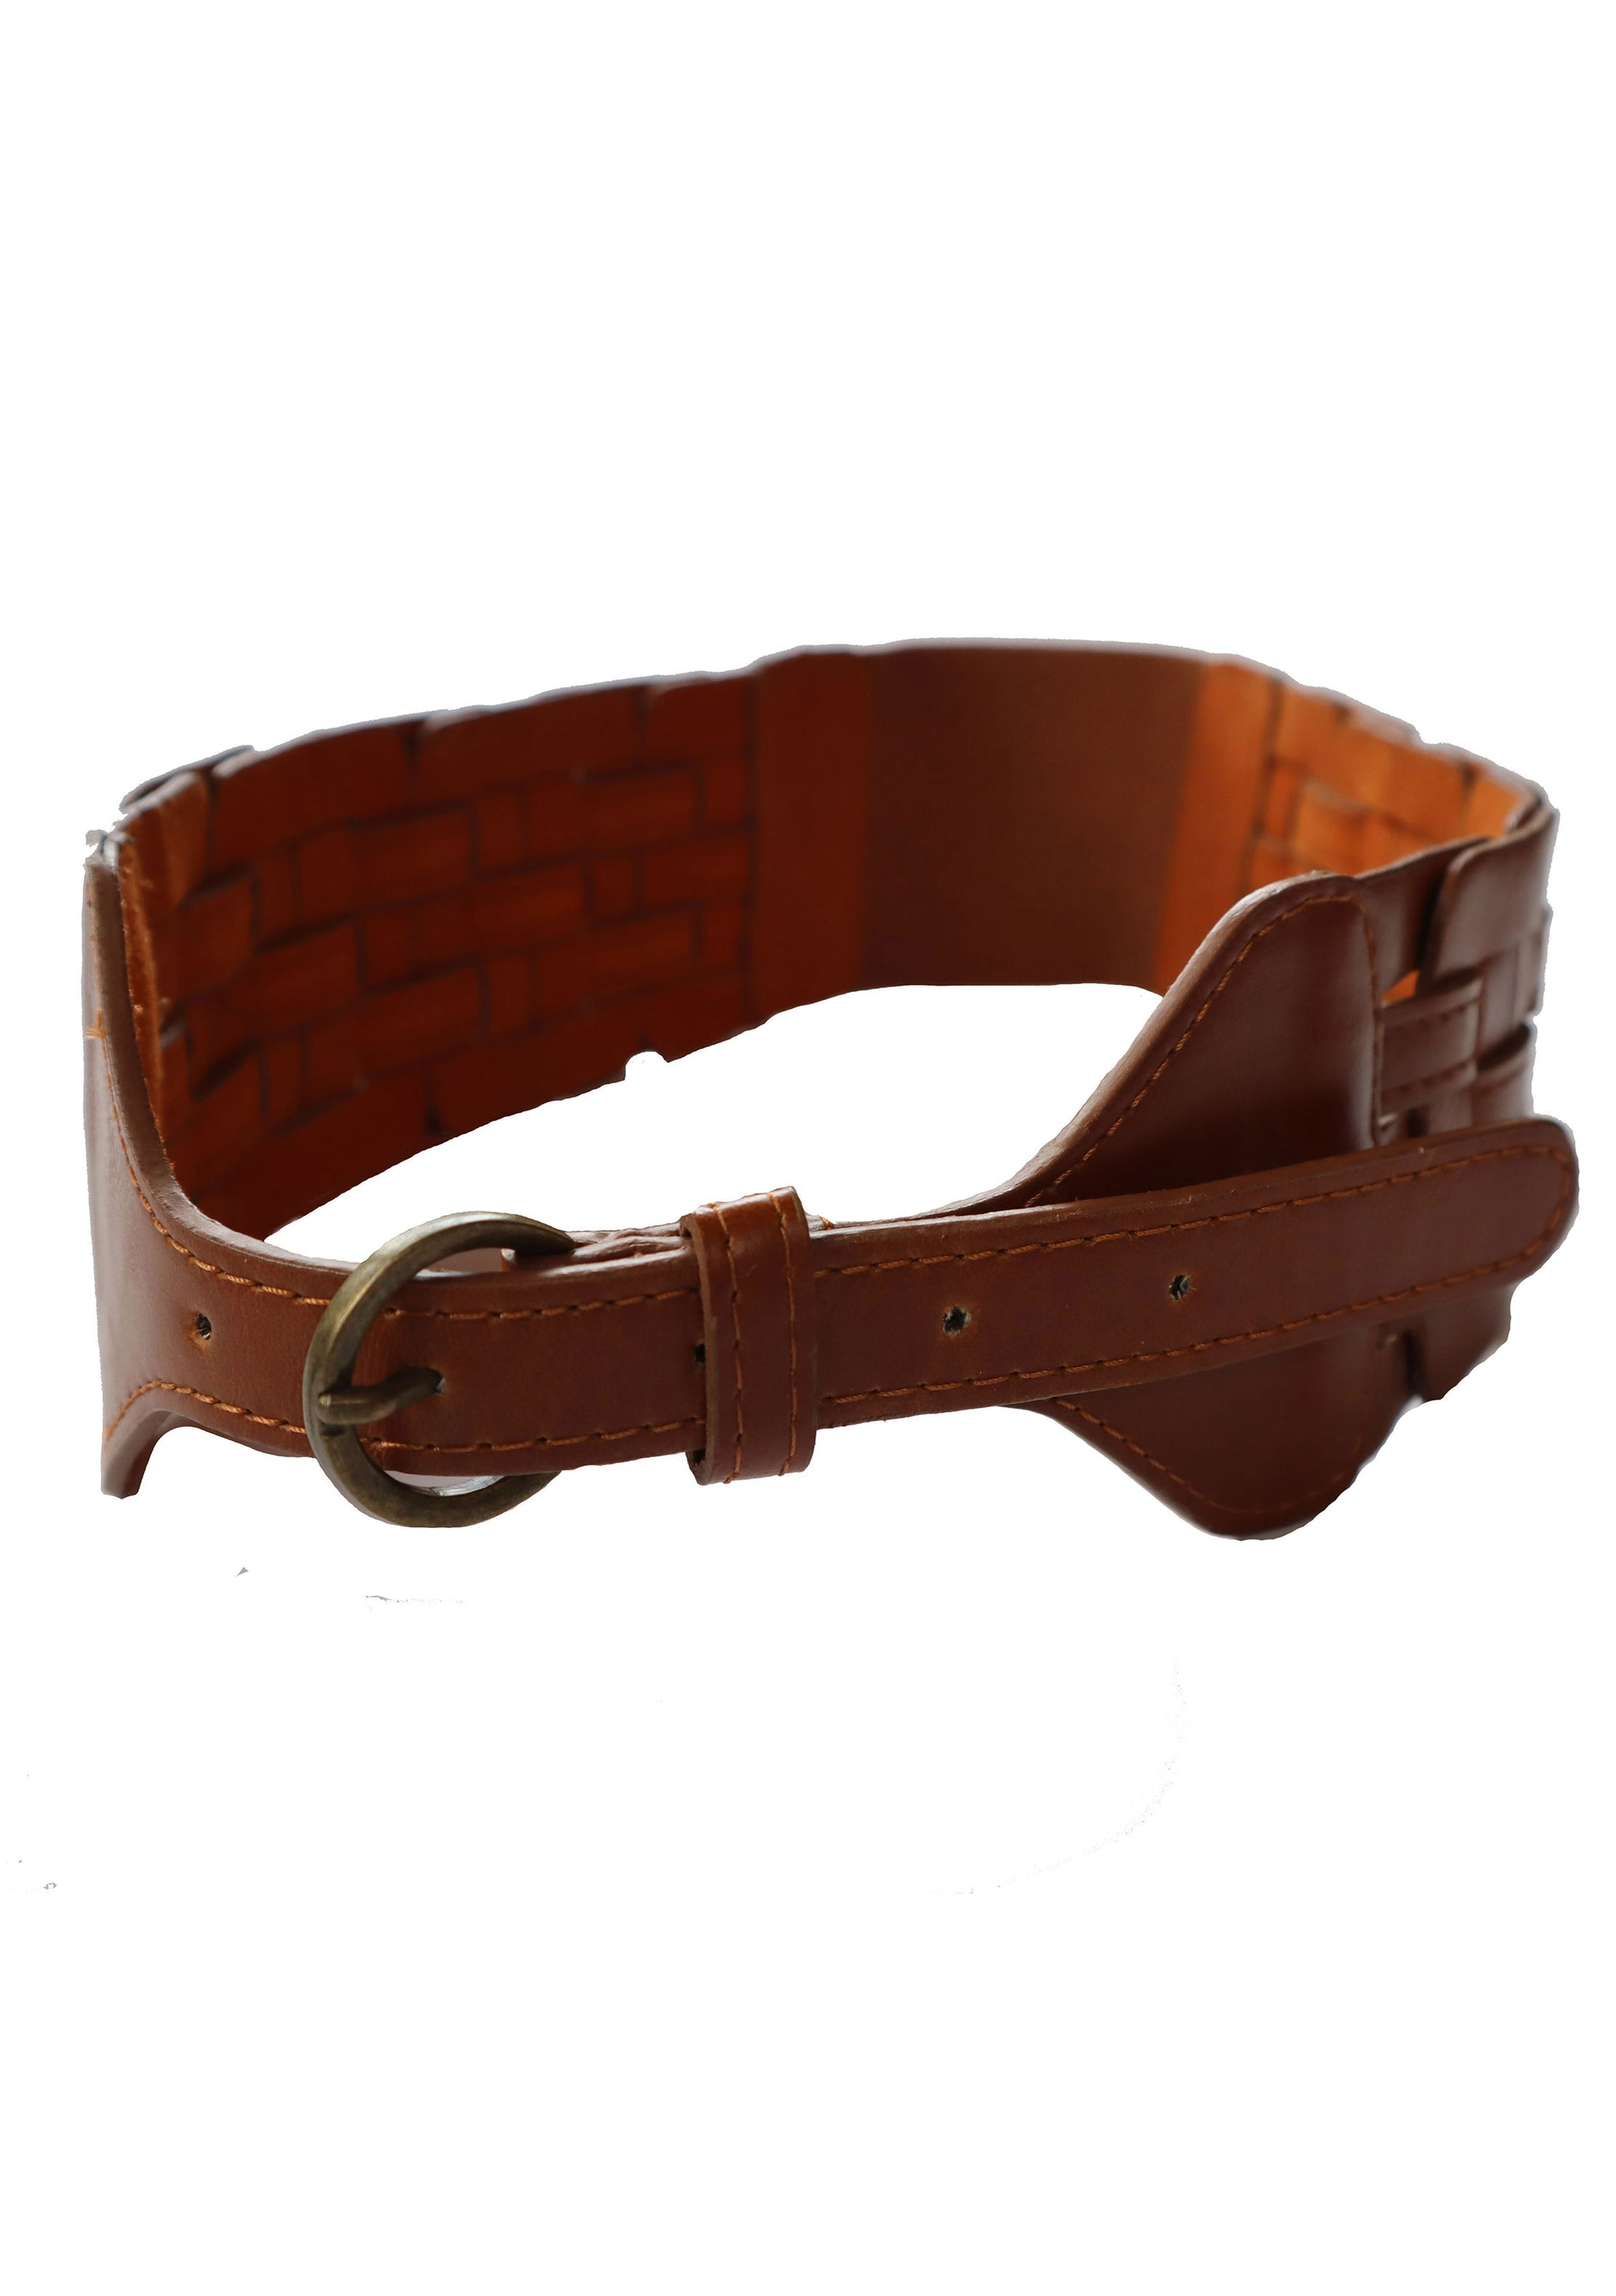 Vintage Leather Cinch Belt w/ Elastic